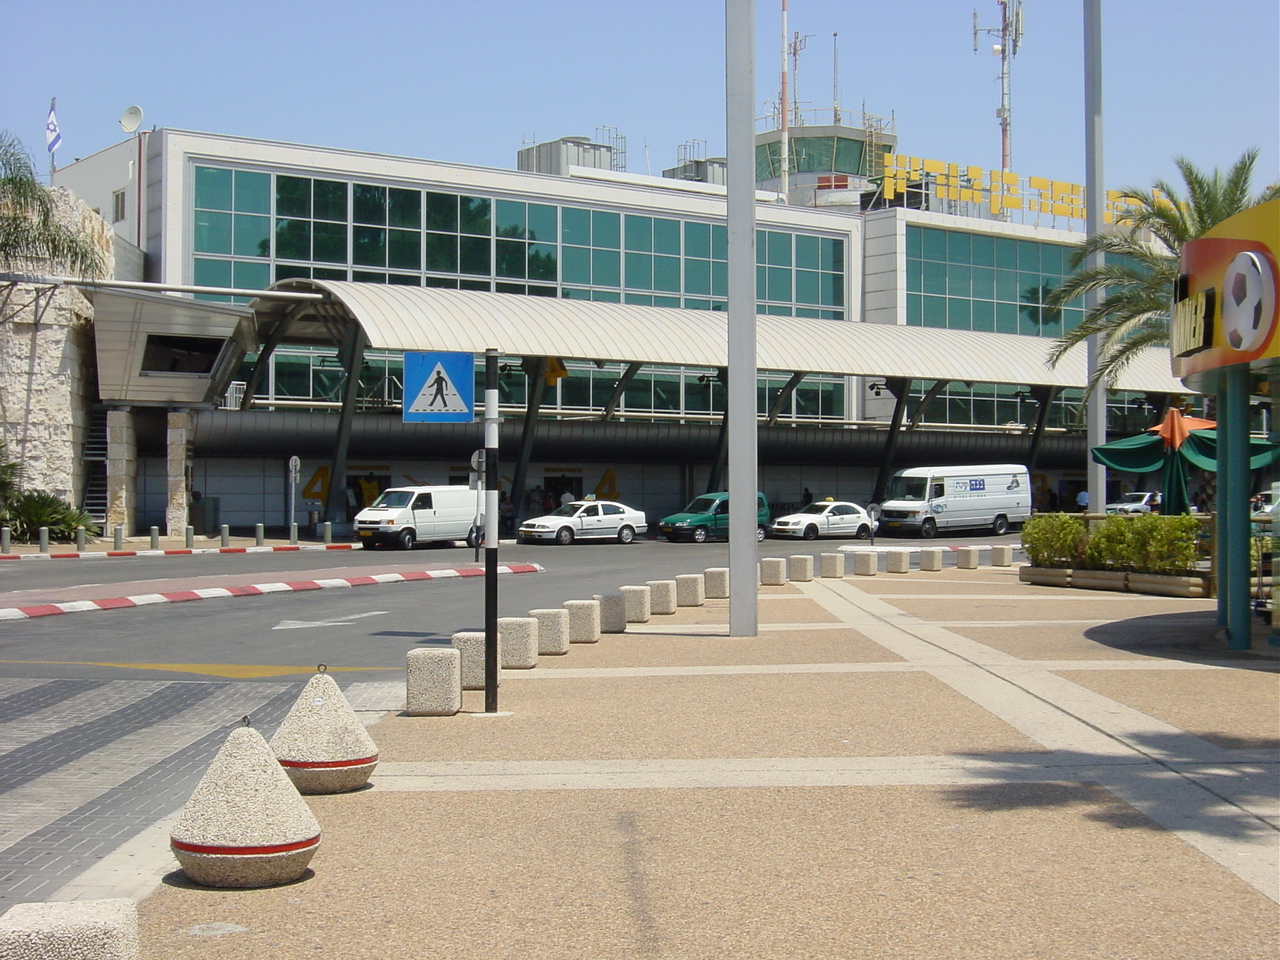 Ben Gurion International Aéroport TelAviv (l'aéroport international de Tel Aviv Ben Gurion). Sayt.1 officiel